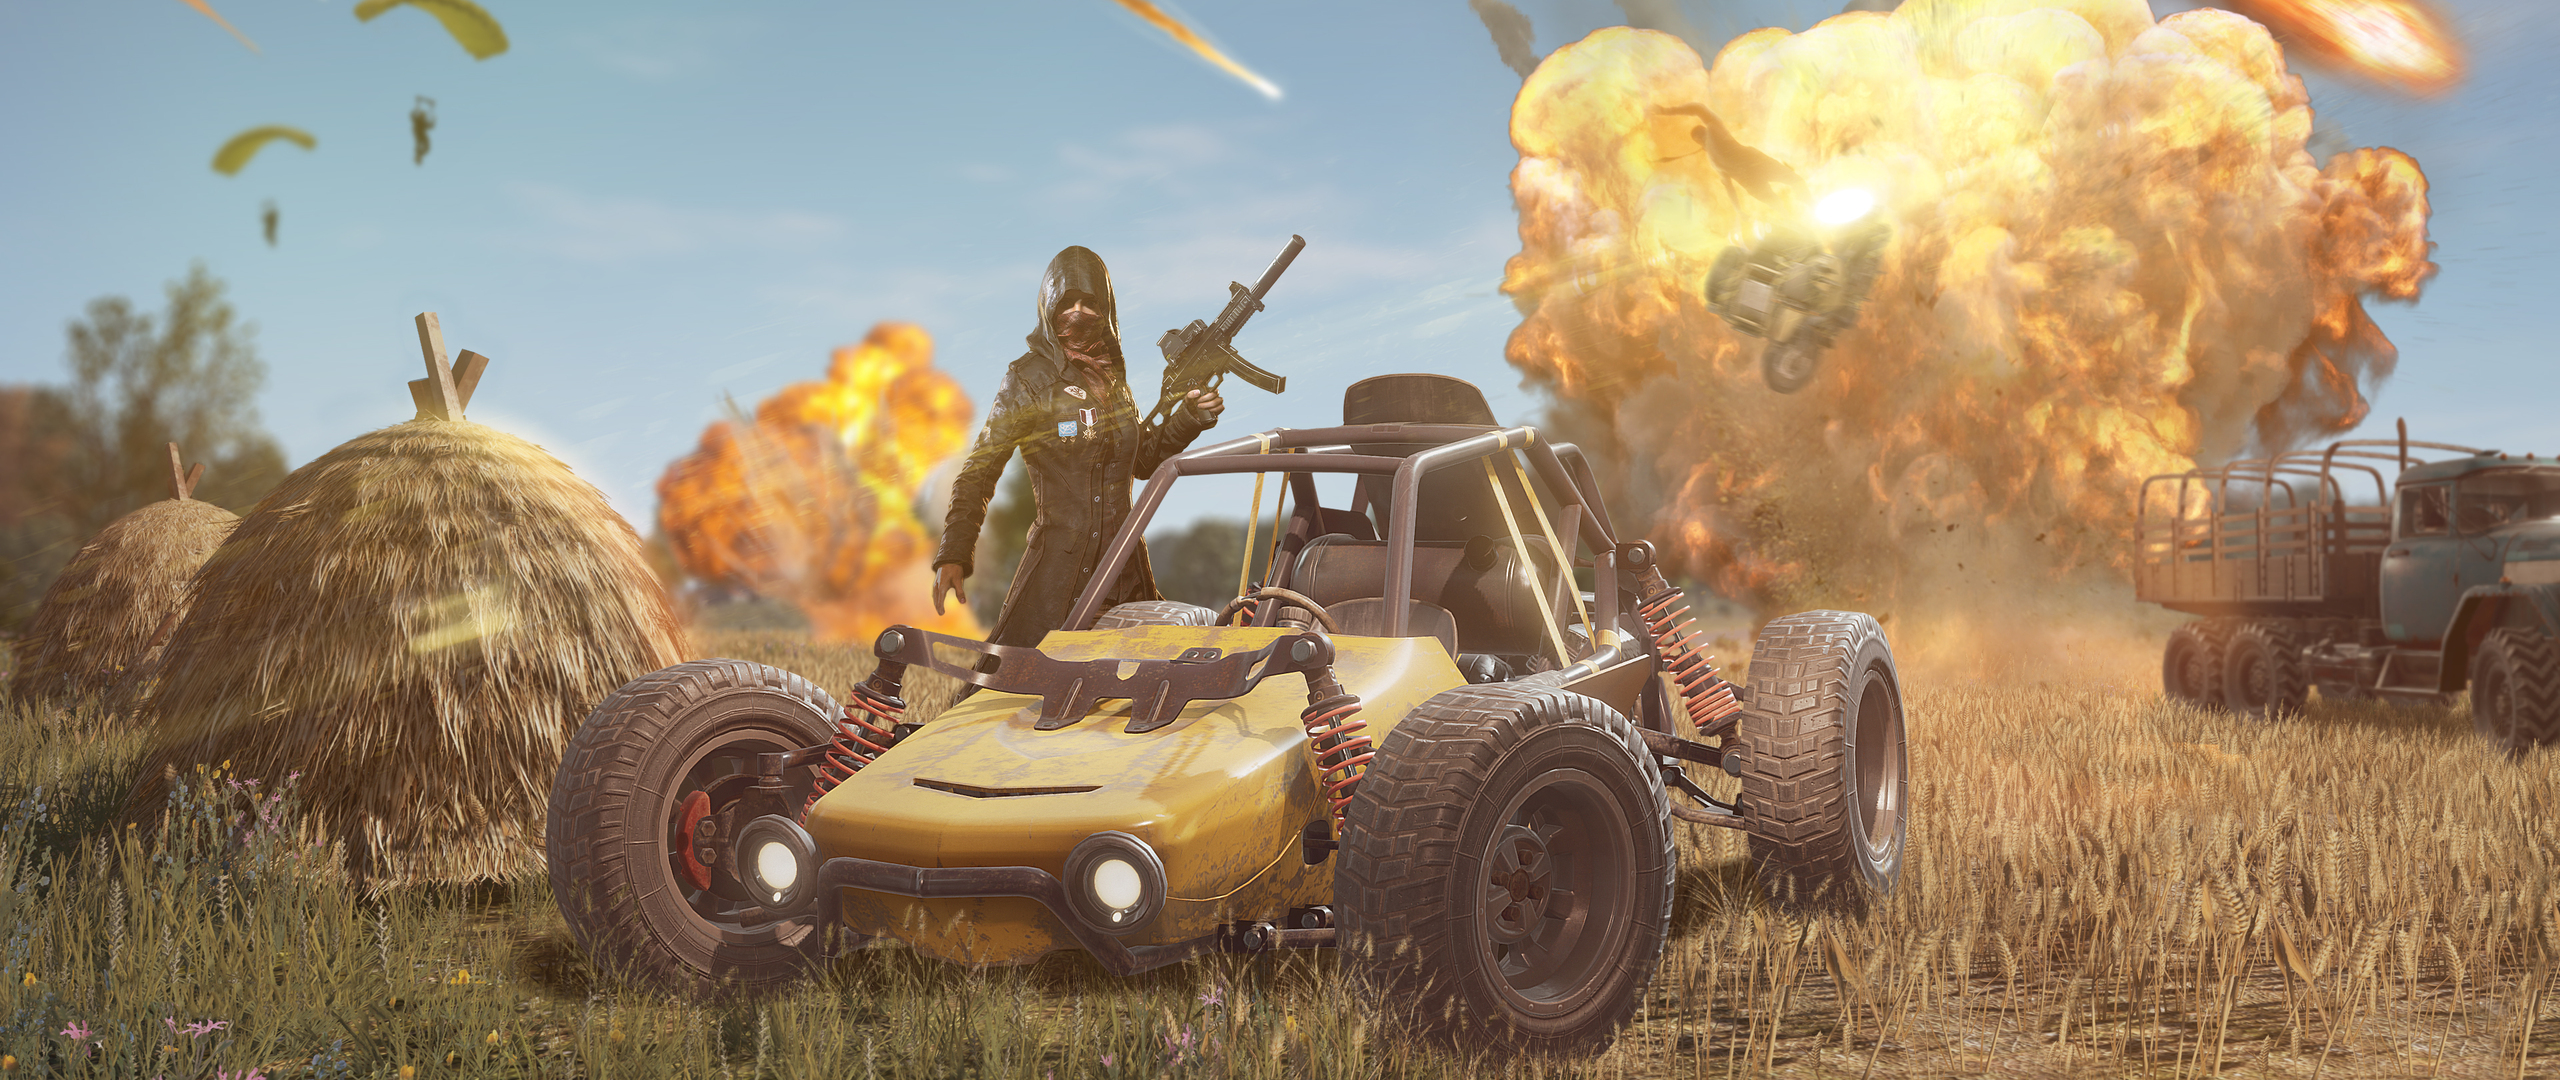 2560x1080 Pubg 4k 2560x1080 Resolution Hd 4k Wallpapers Images